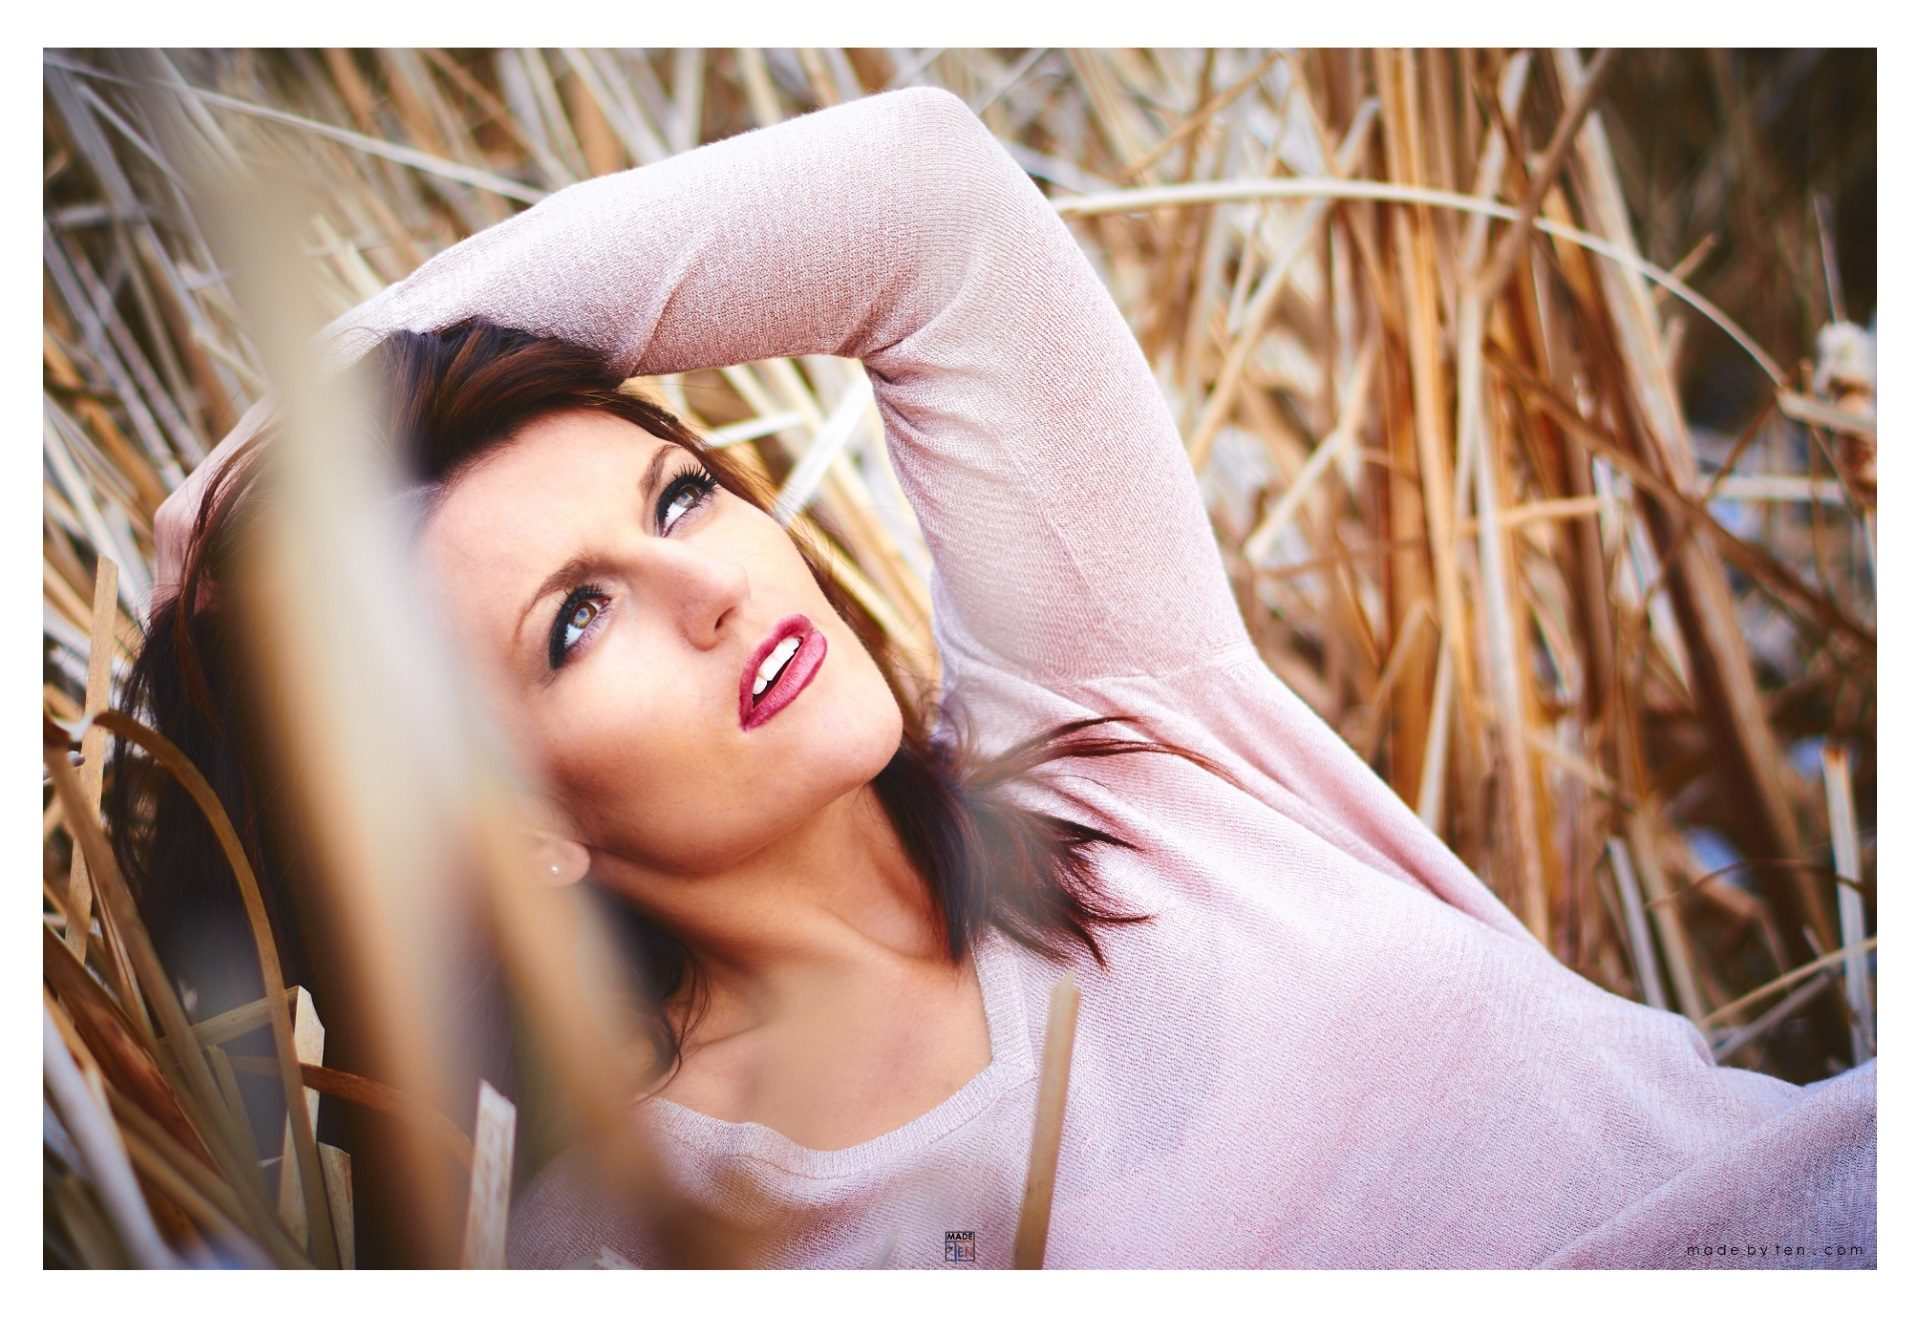 Woman Looking at Sky - GTA Women Lifestyle Photography